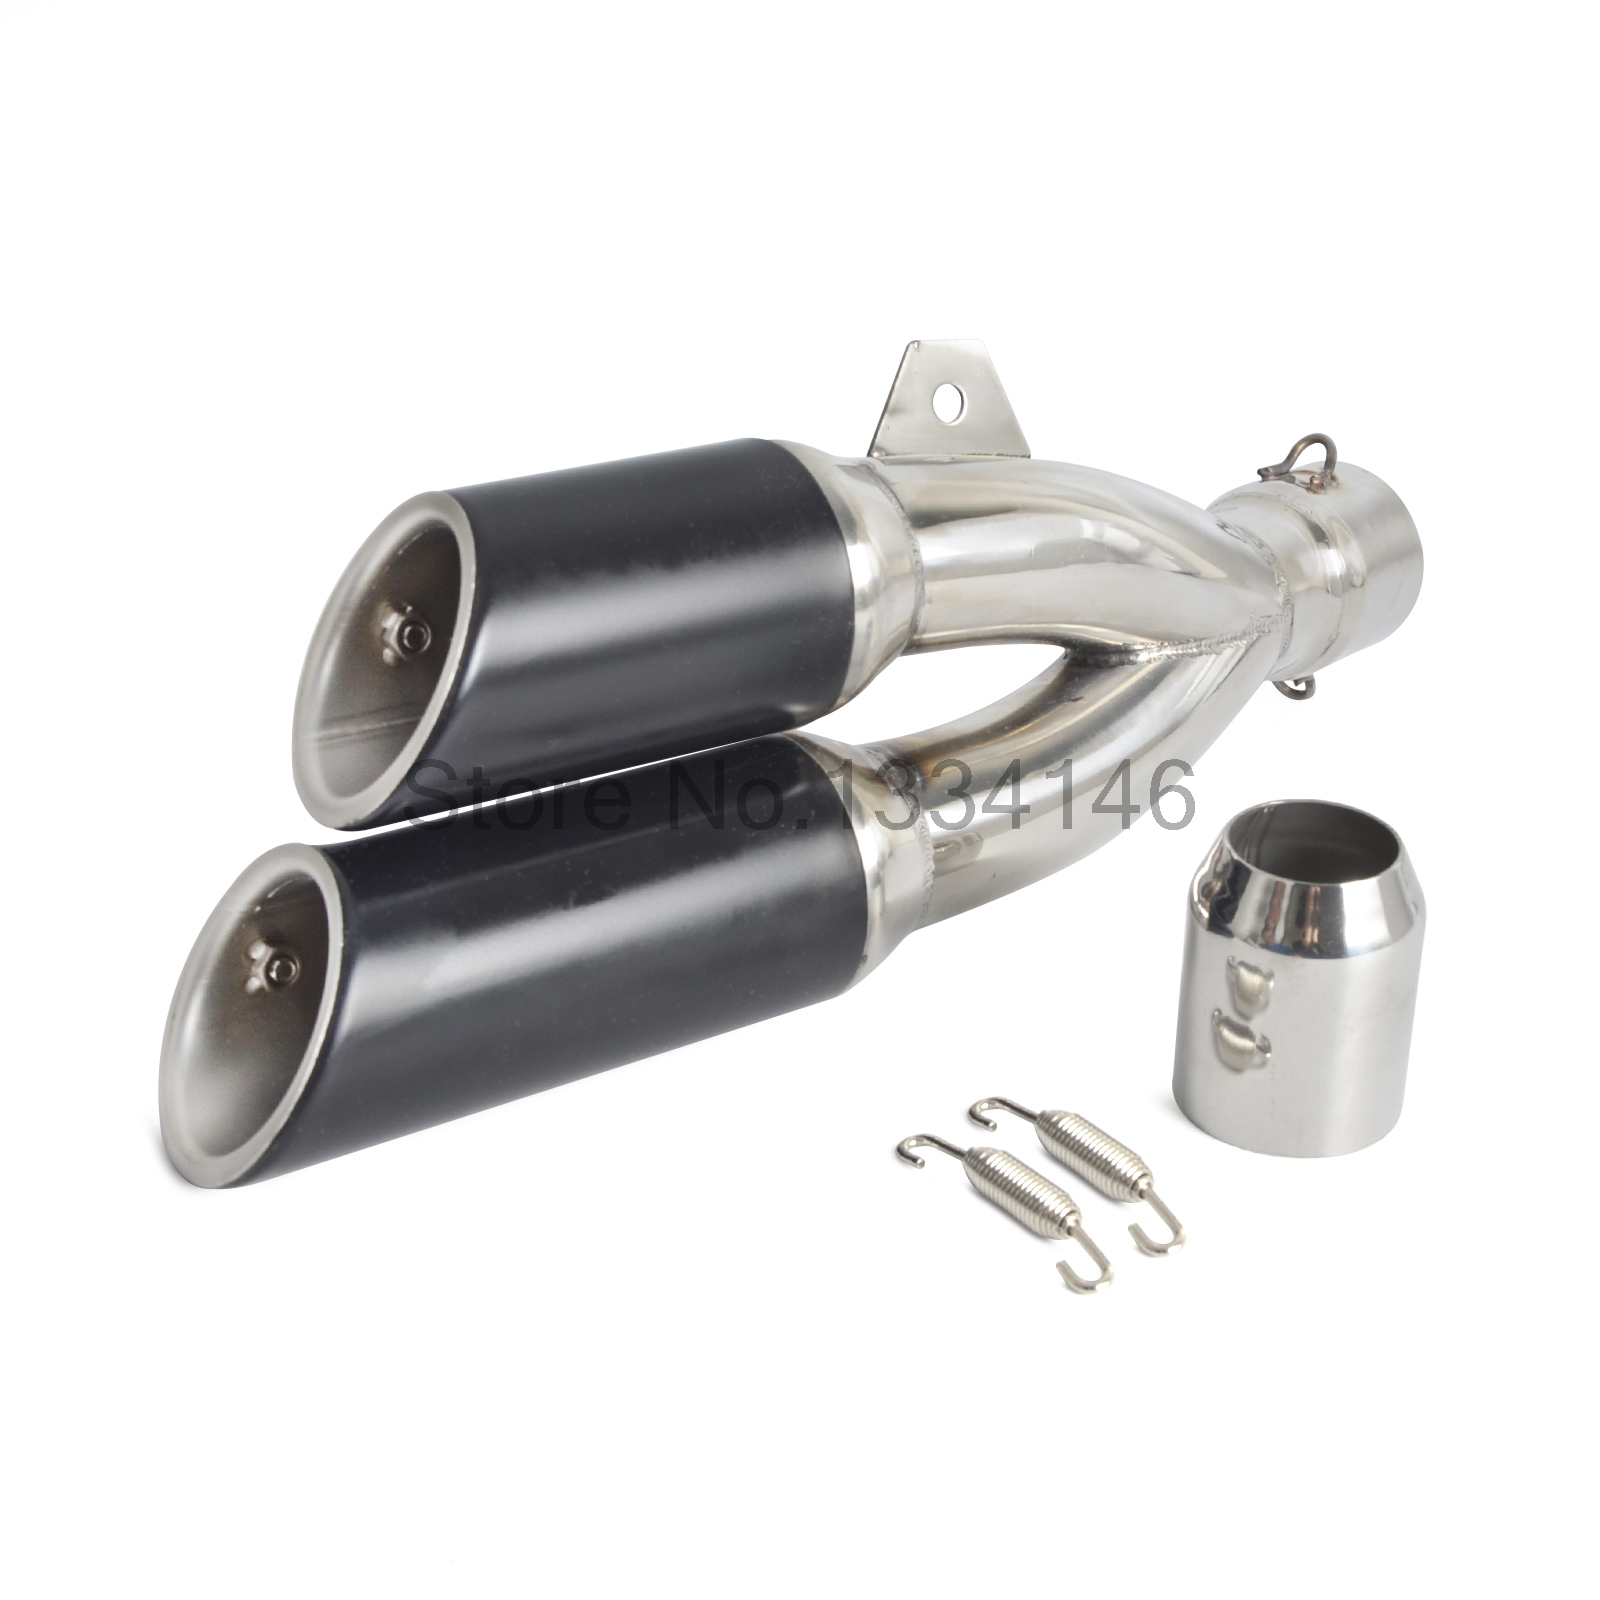 38mm-51mm Slip On Dual Exhaust Muffler Vent Pipe For Scooter Motorcycle Street Bike Motocross Supermoto